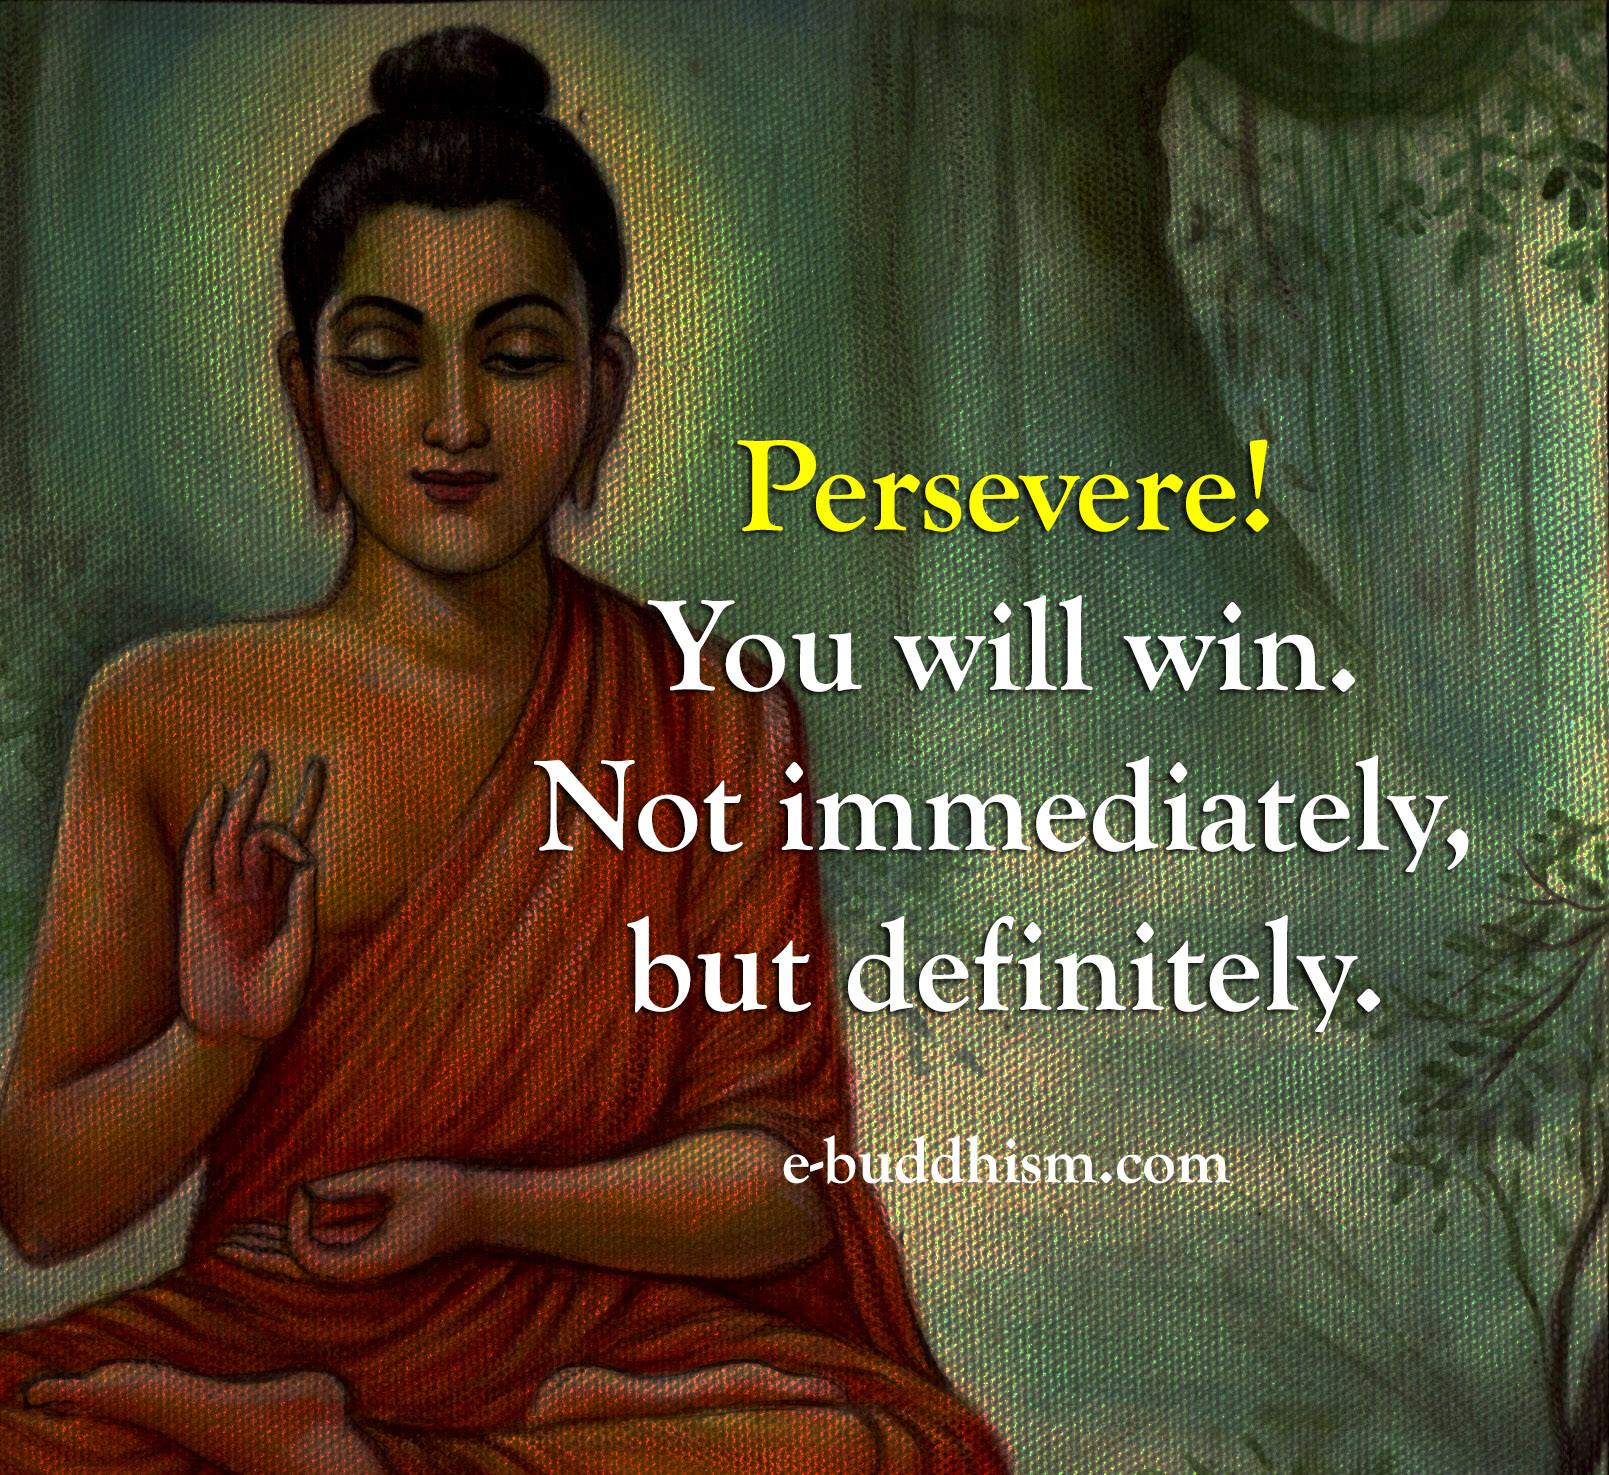 [Image] You will definitely win